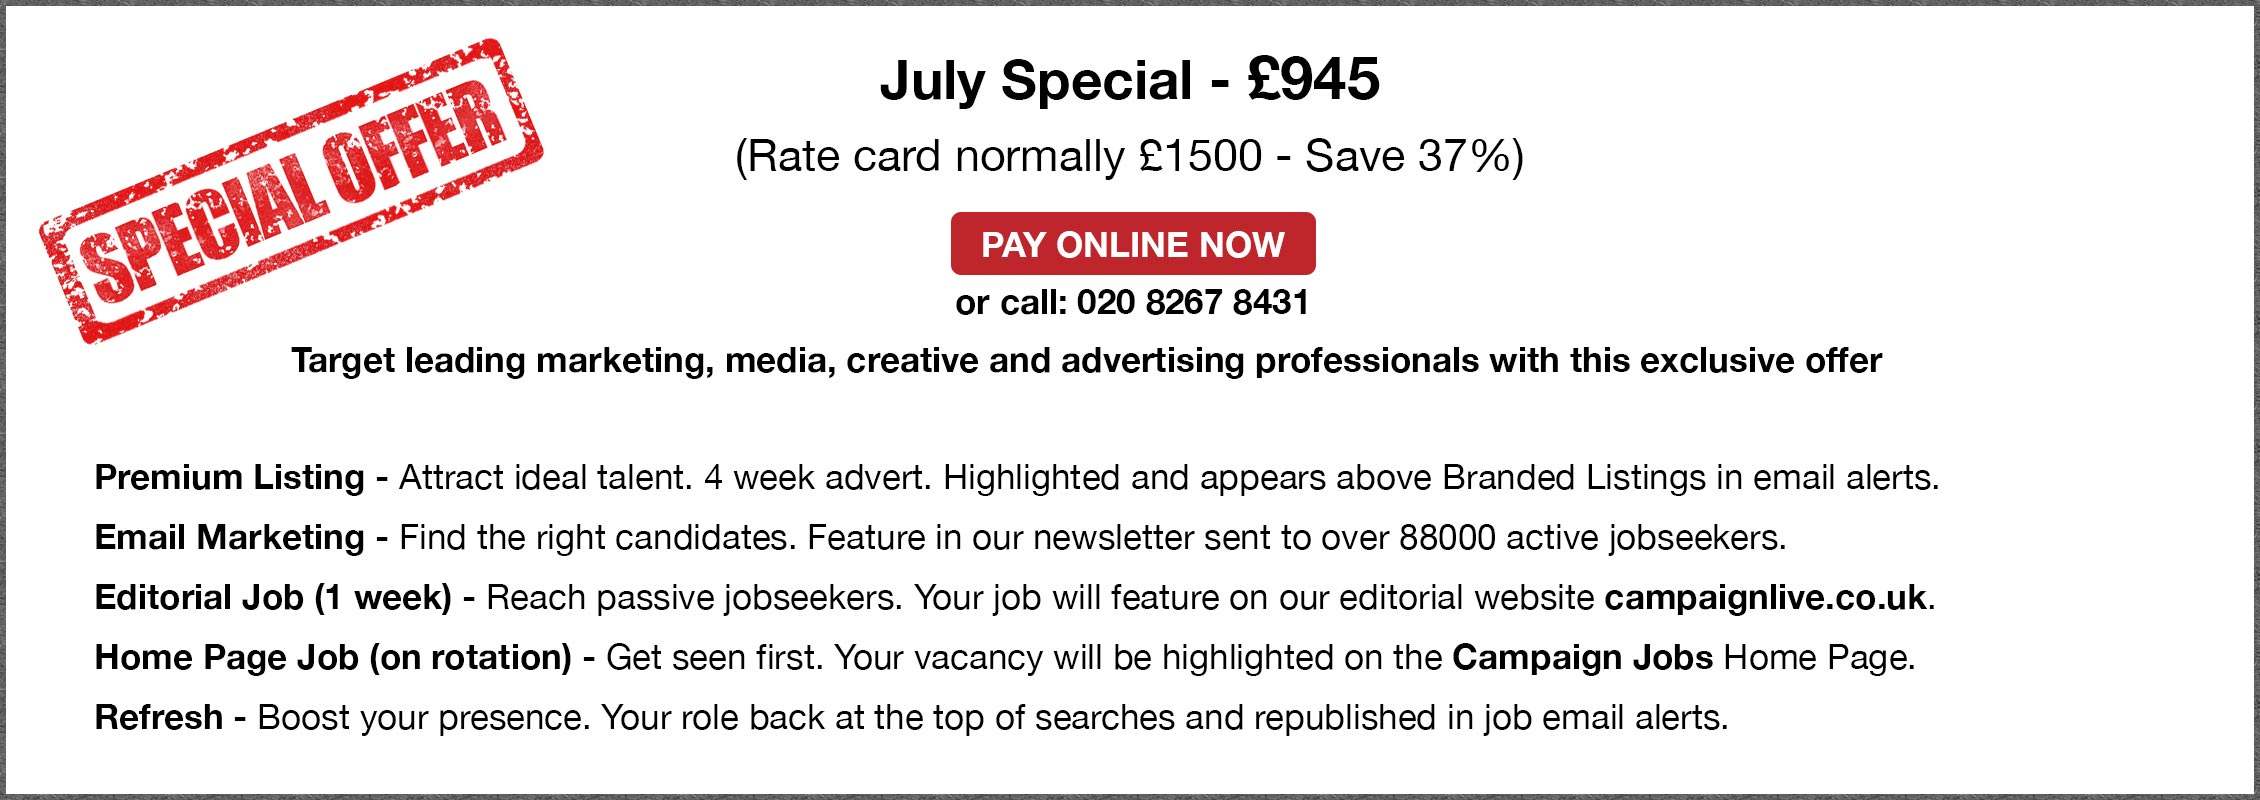 Special Offer. July Special - £945. (Rate card normally £1500 - Save 37%. PAY ONLINE NOW or call: 020 8267 8431. Target leading marketing, media, creative and advertising professionals with this exclusive offer. Premium Listing - Attract ideal talent. 4 week advert. Highlighted and appears above Branded Listings in email alerts. Email Marketing - Find the right candidates. Feature in our newsletter sent to over 88000 active jobseekers. Editorial Job (1 week) - Reach passive jobseekers. Your job will feature on our editorial website campaignlive.co.uk. Home Page Job (on rotation) - Get seen first. Your vacancy will be highlighted on the Campaign Jobs Home Page. Refresh - Boost your presence. Your role back at the top of searches and republished in job email alerts.